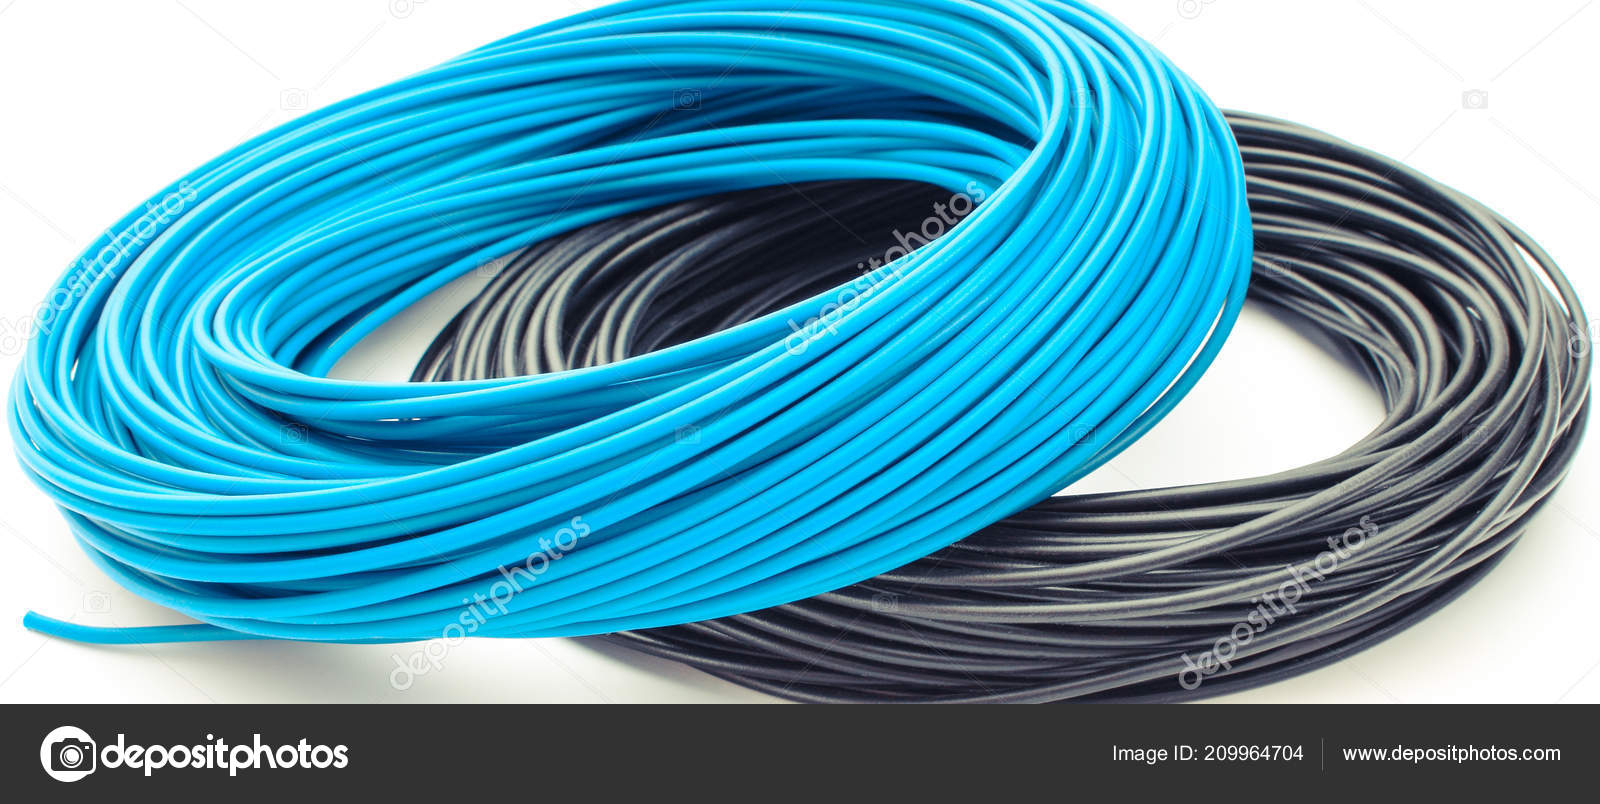 hight resolution of blue and black cables on white background electrical components for installation stock image